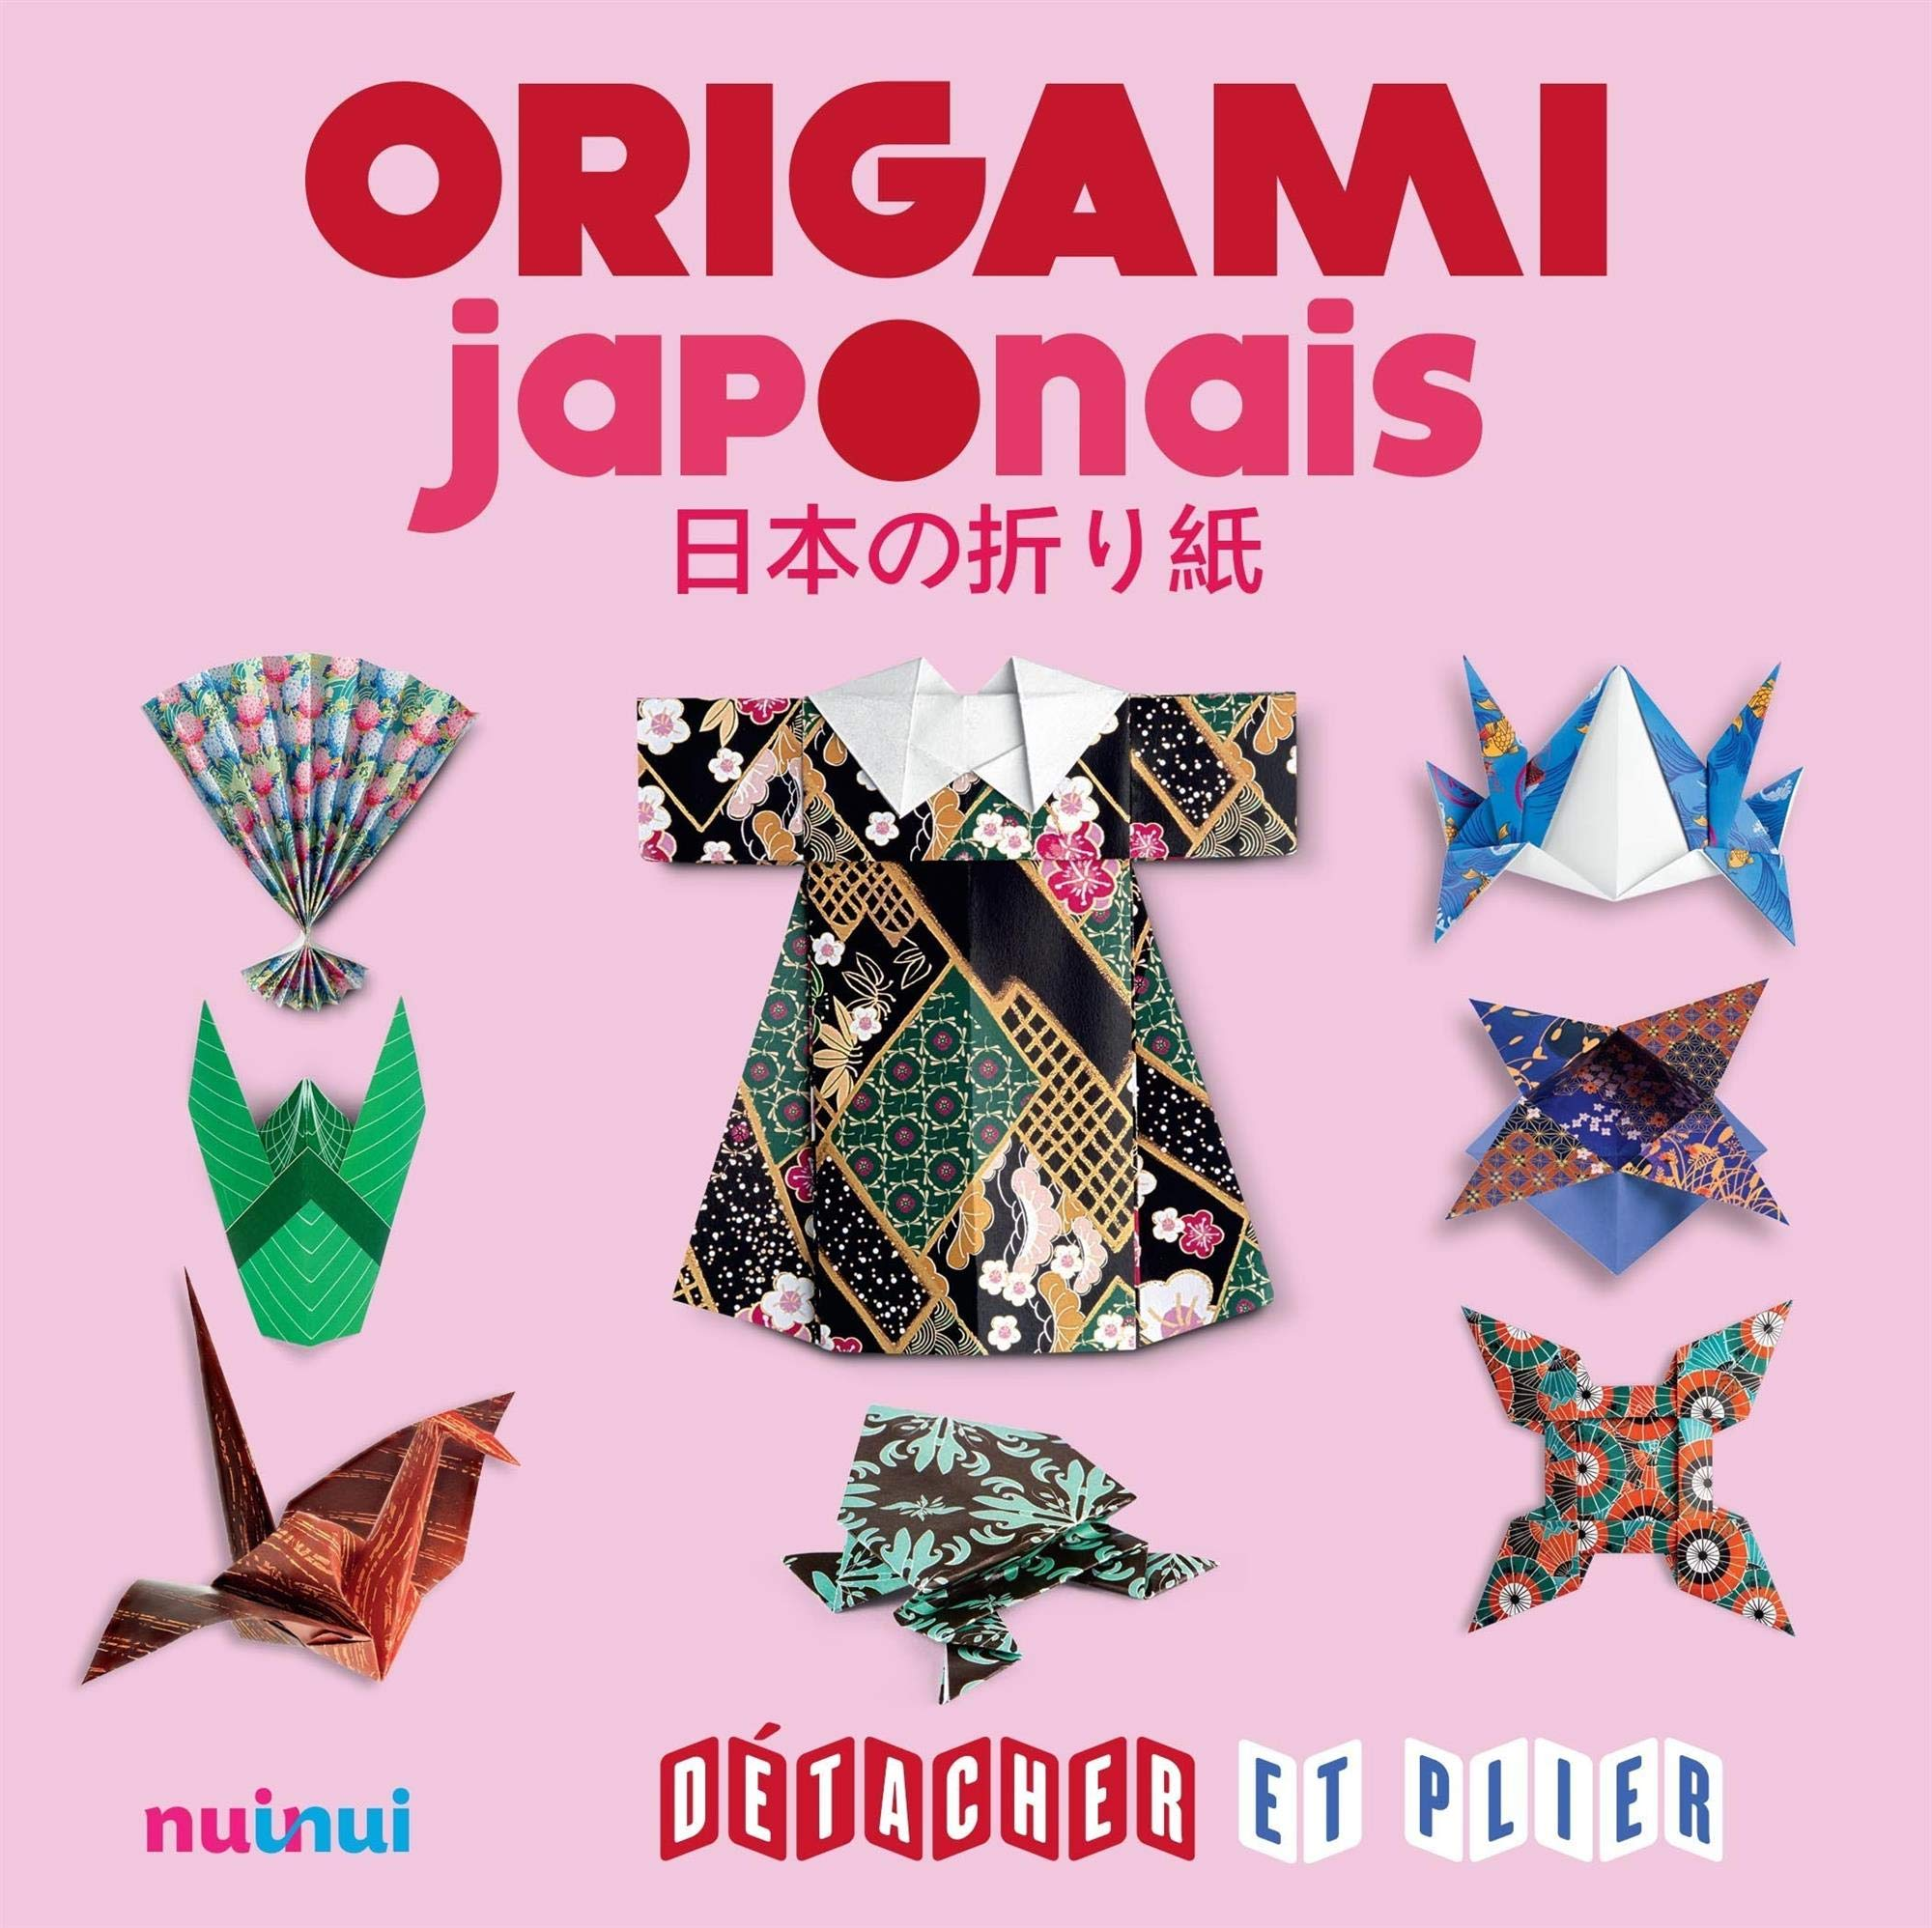 Origami japonais (Détacher et plier): Amazon.es: Collectif ...